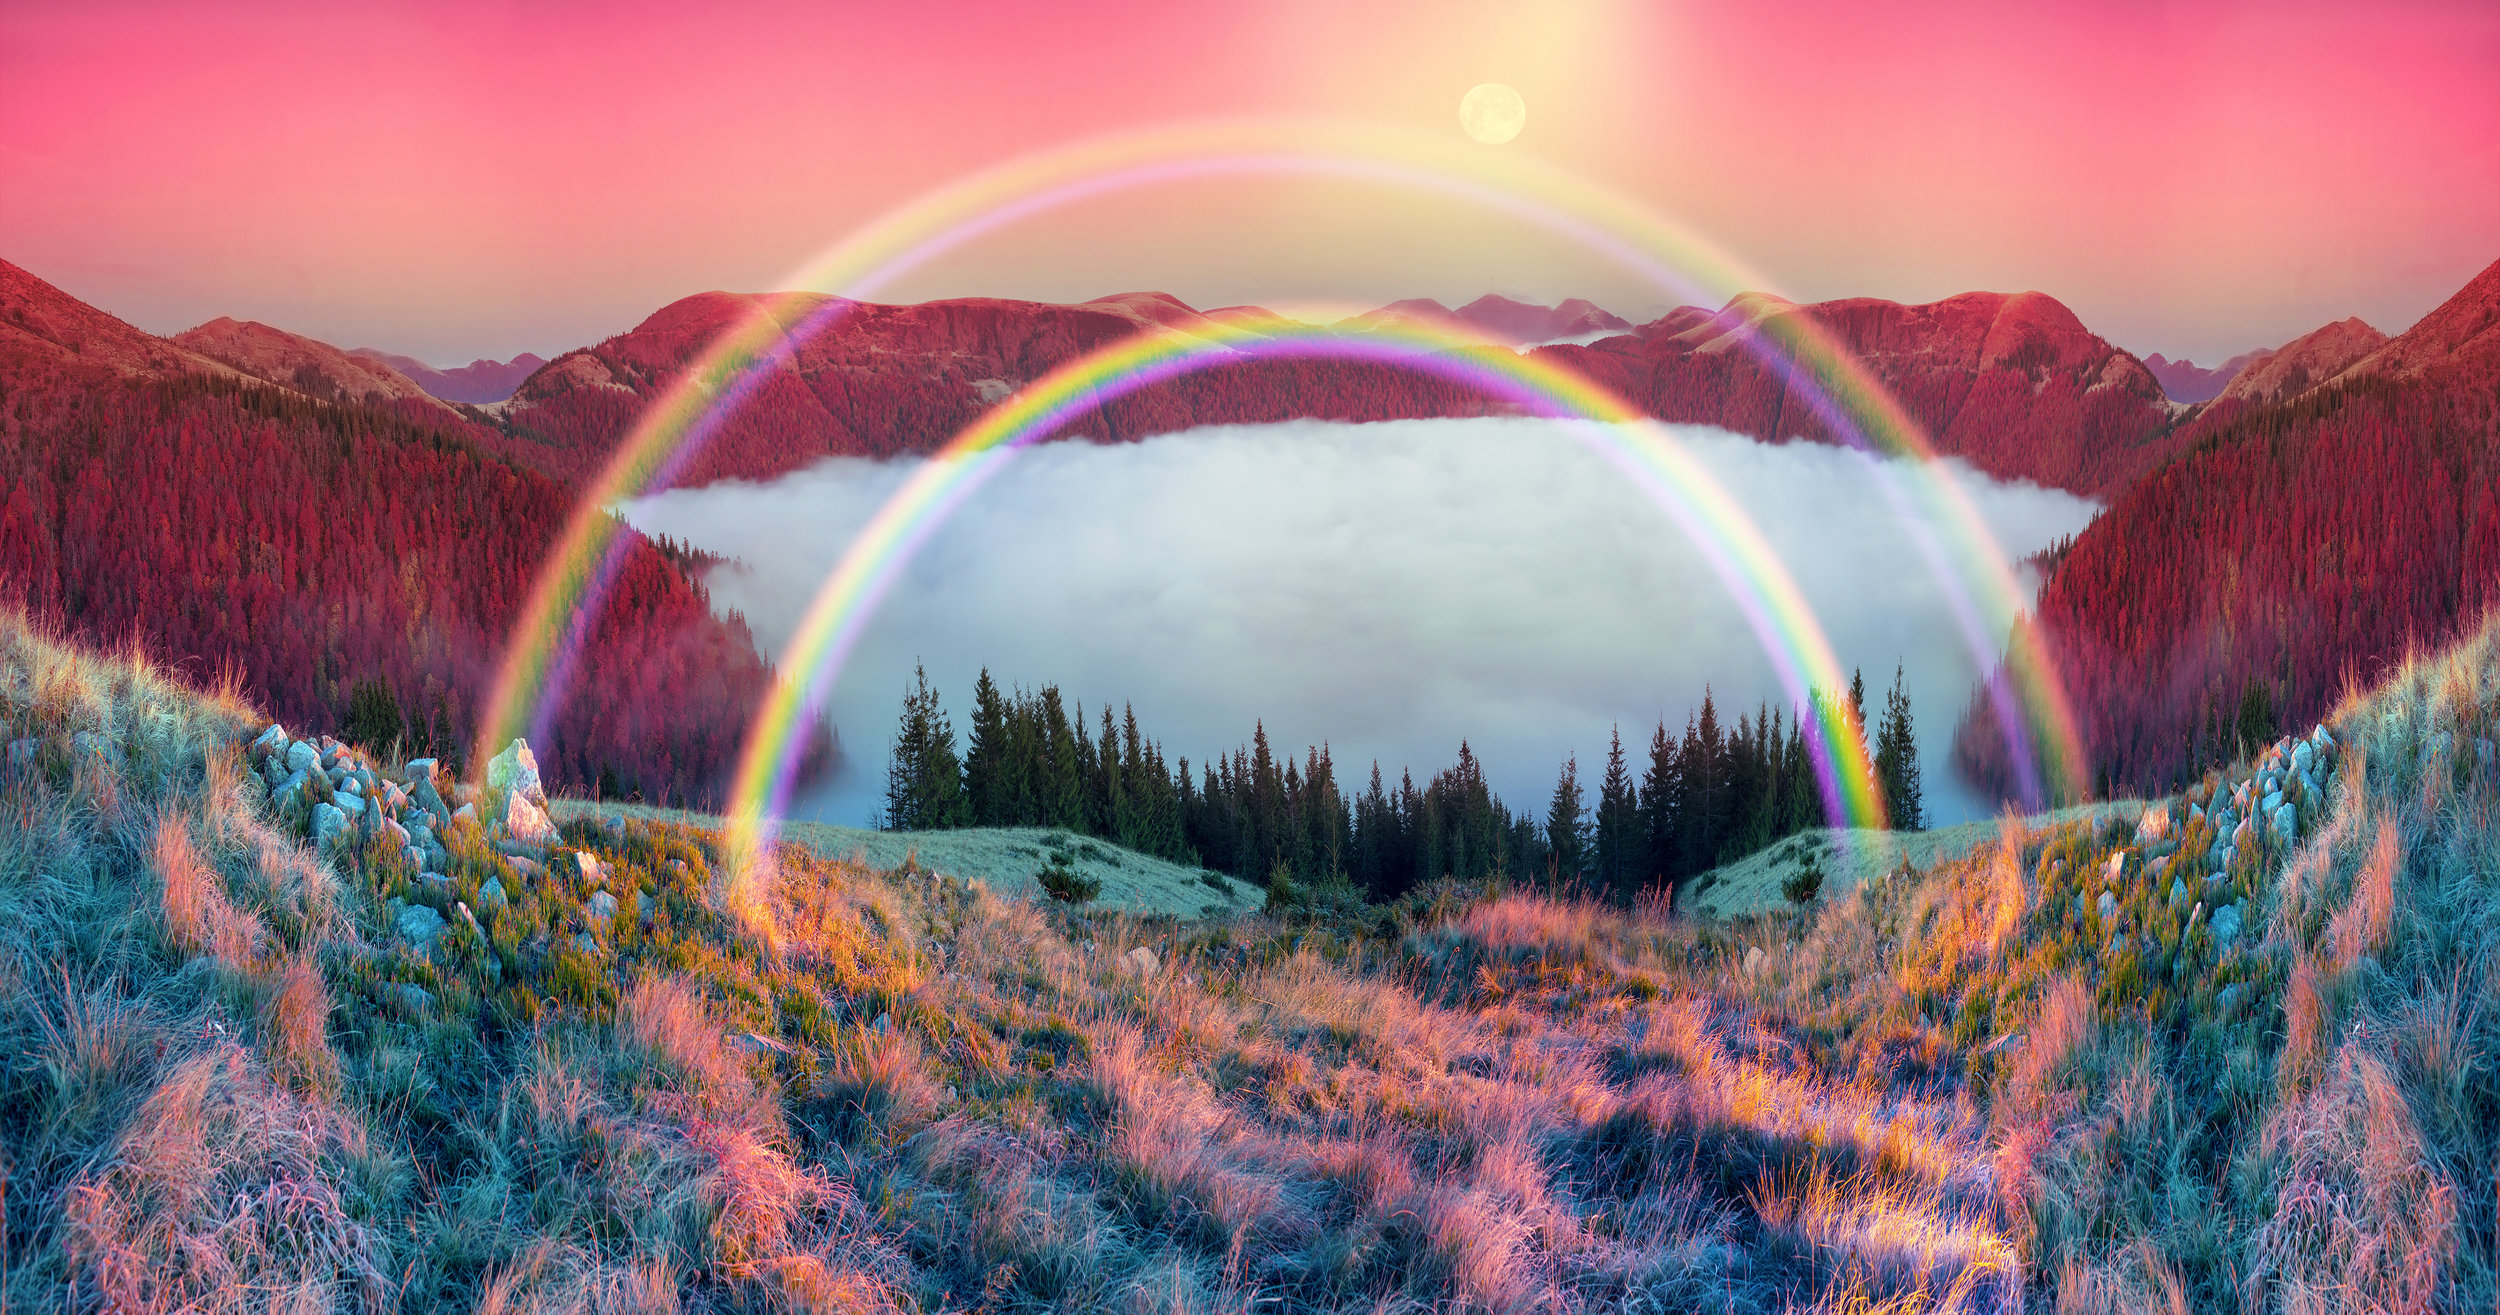 DISCOVER YOUR POT OF GOLD - A NEW AGE PROSPERITY SEMINAR